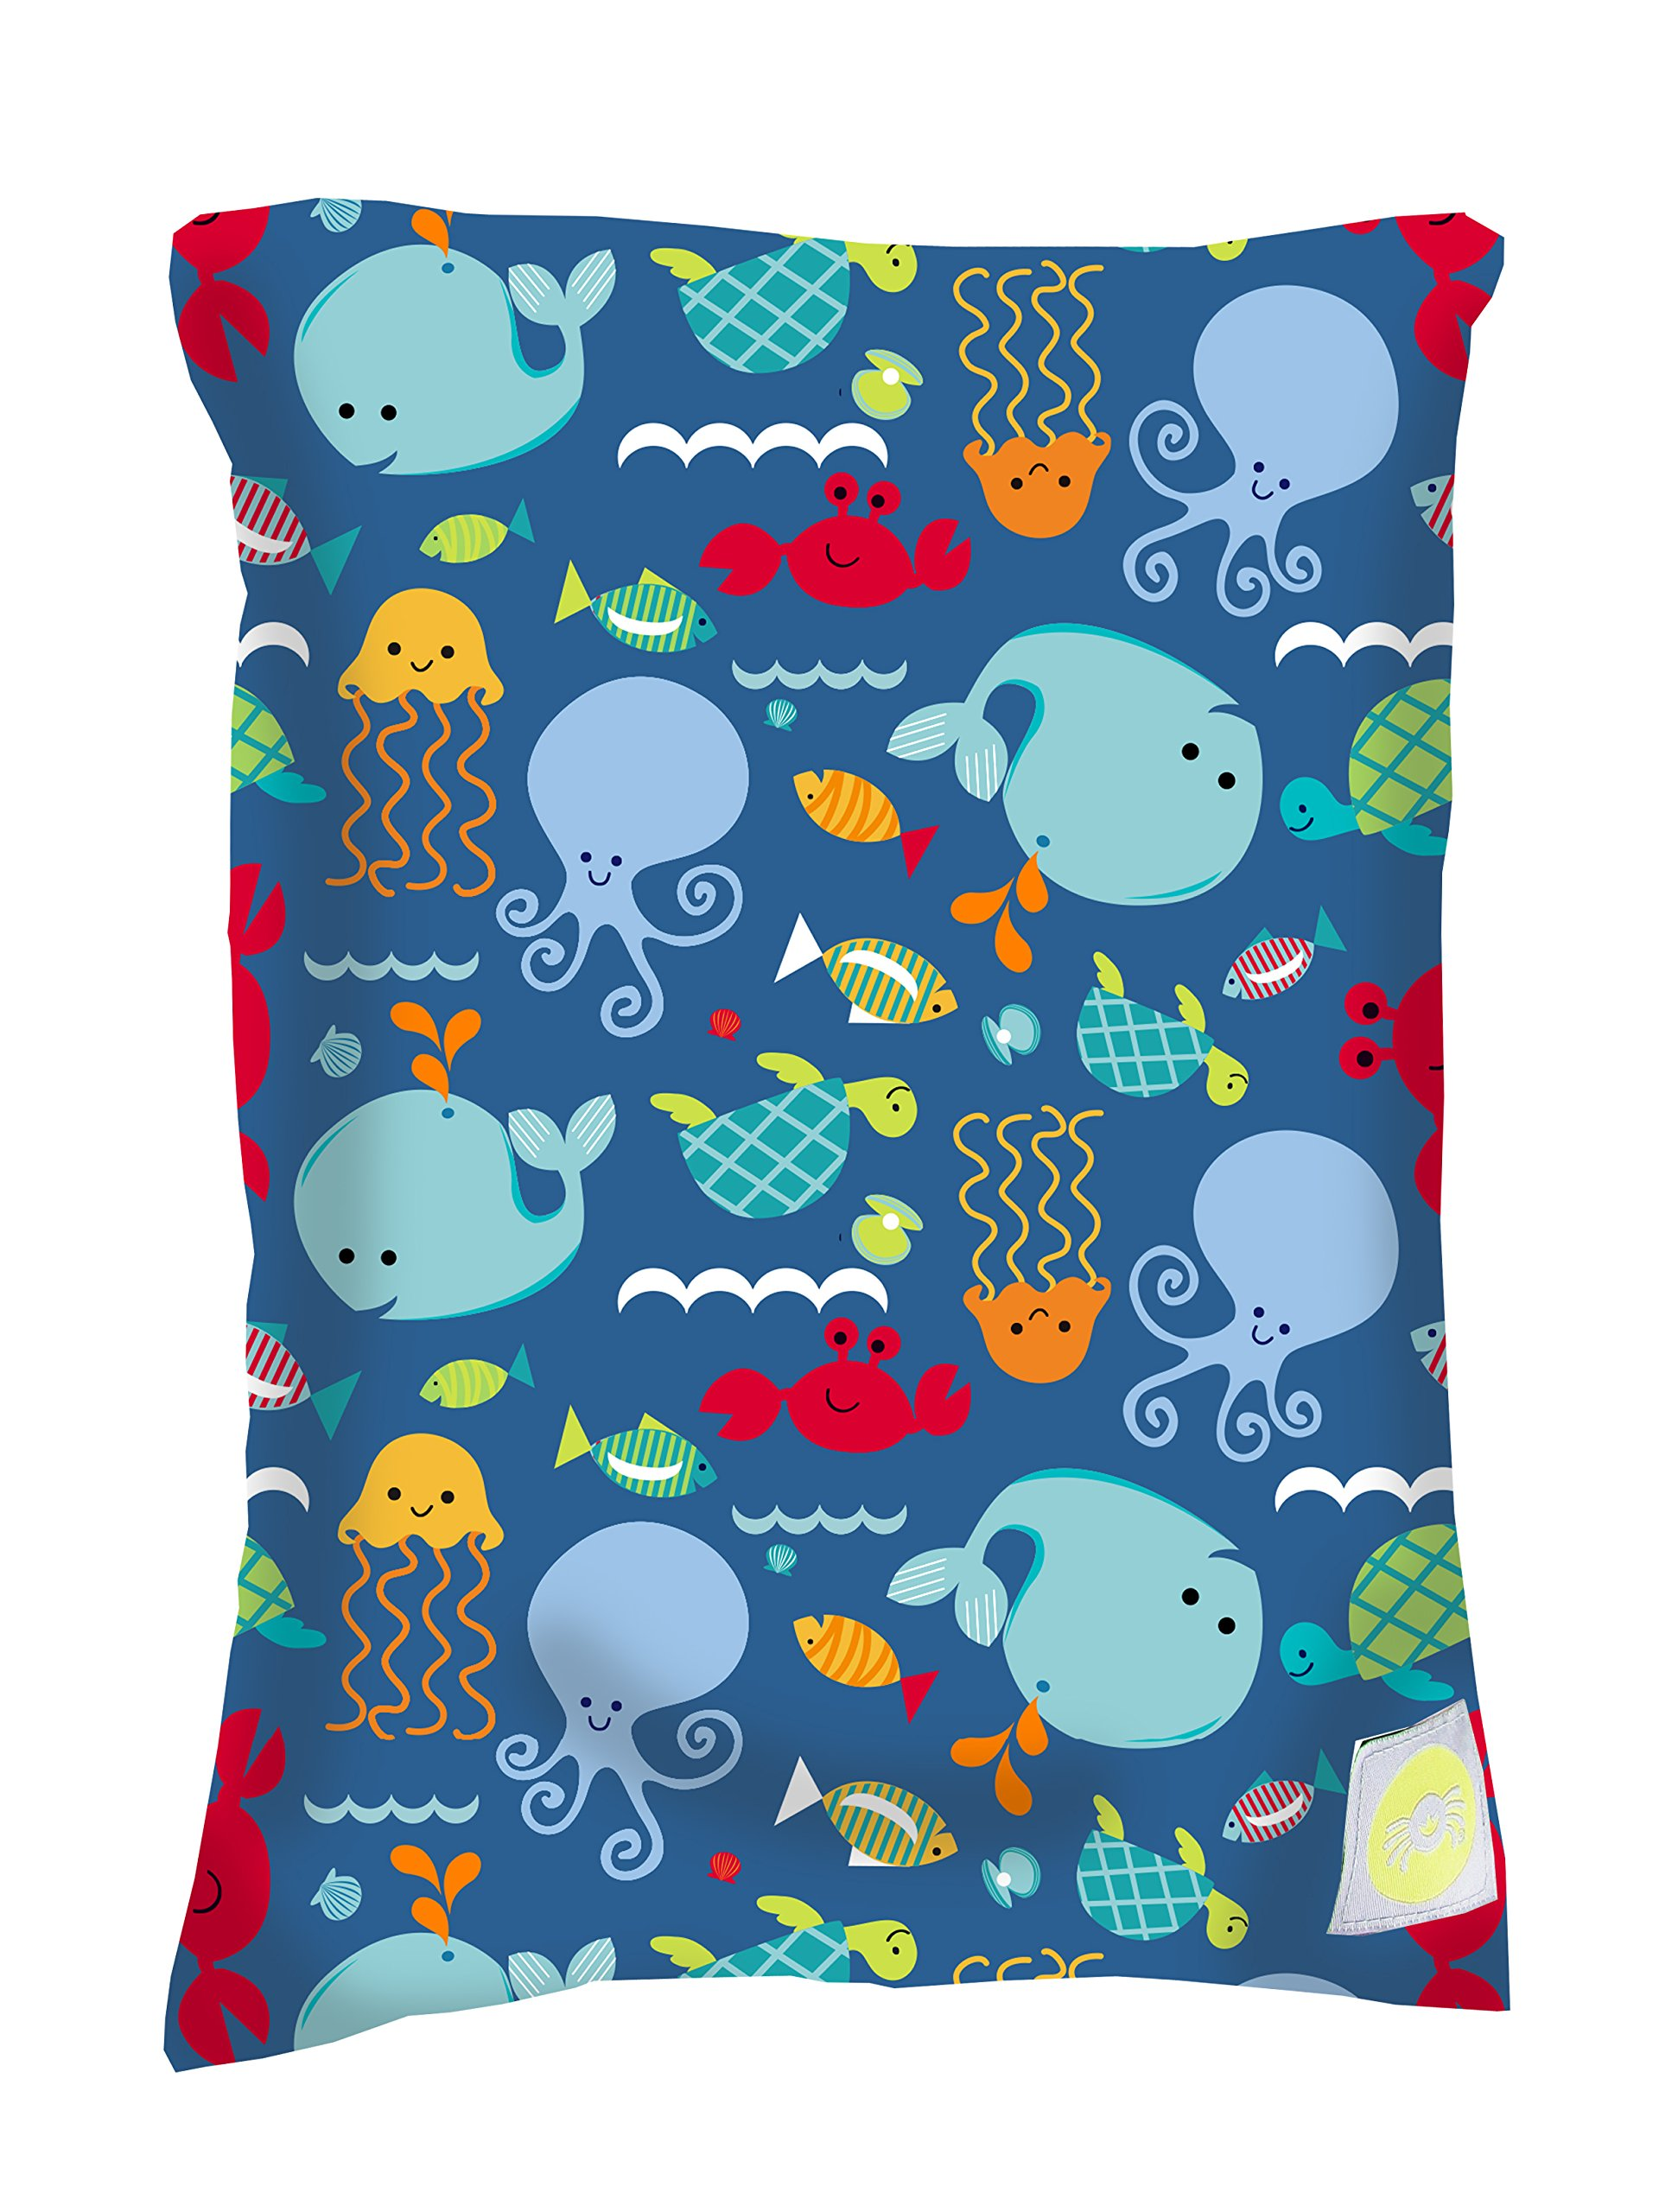 Itzy Ritzy Sealed Wet Bag - Washable and Reusable Wet Bag with Water Resistant Lining Ideal for Swimwear, Diapers, Gym Clothes & Toiletries; Measures 11'' x 14'', Under the Sea by Itzy Ritzy